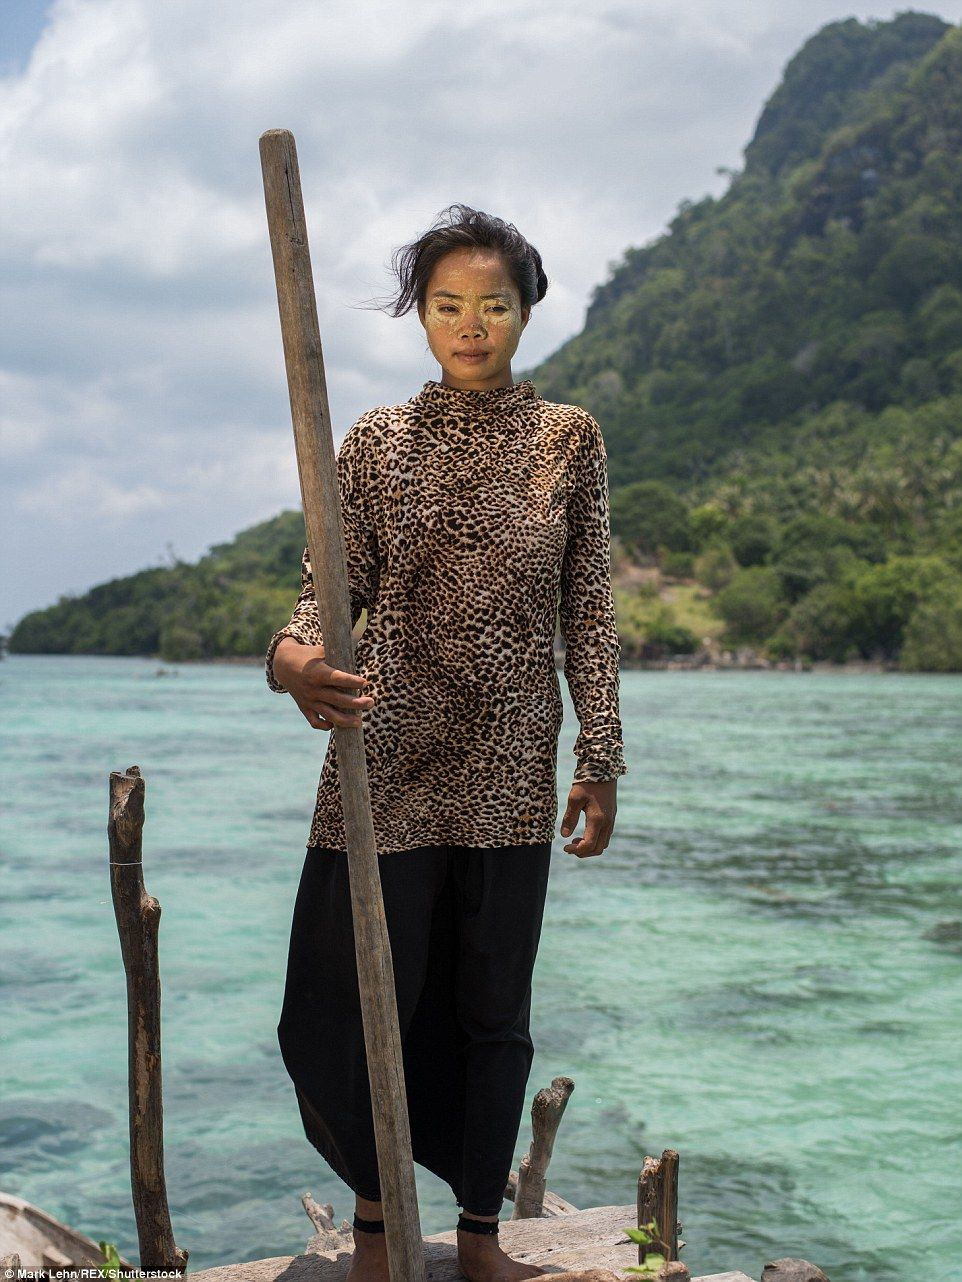 Stunning Images Capture The Incredible Life Of Borneo's